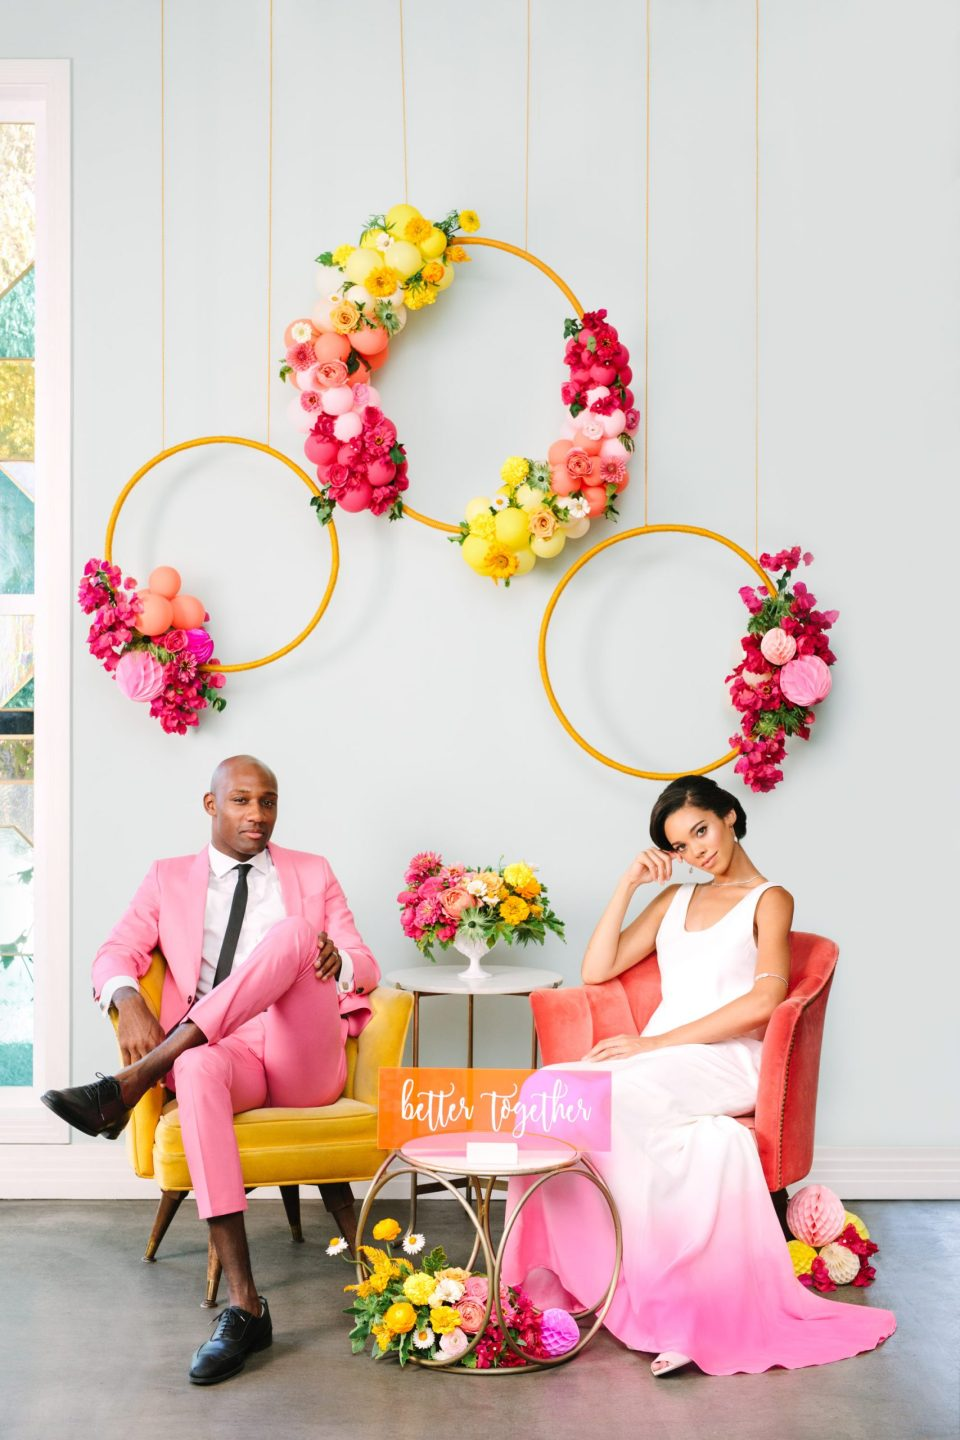 Groom in pink suit and bride in dip-dyed pink dress with ombre floral accents - www.marycostaweddings.com